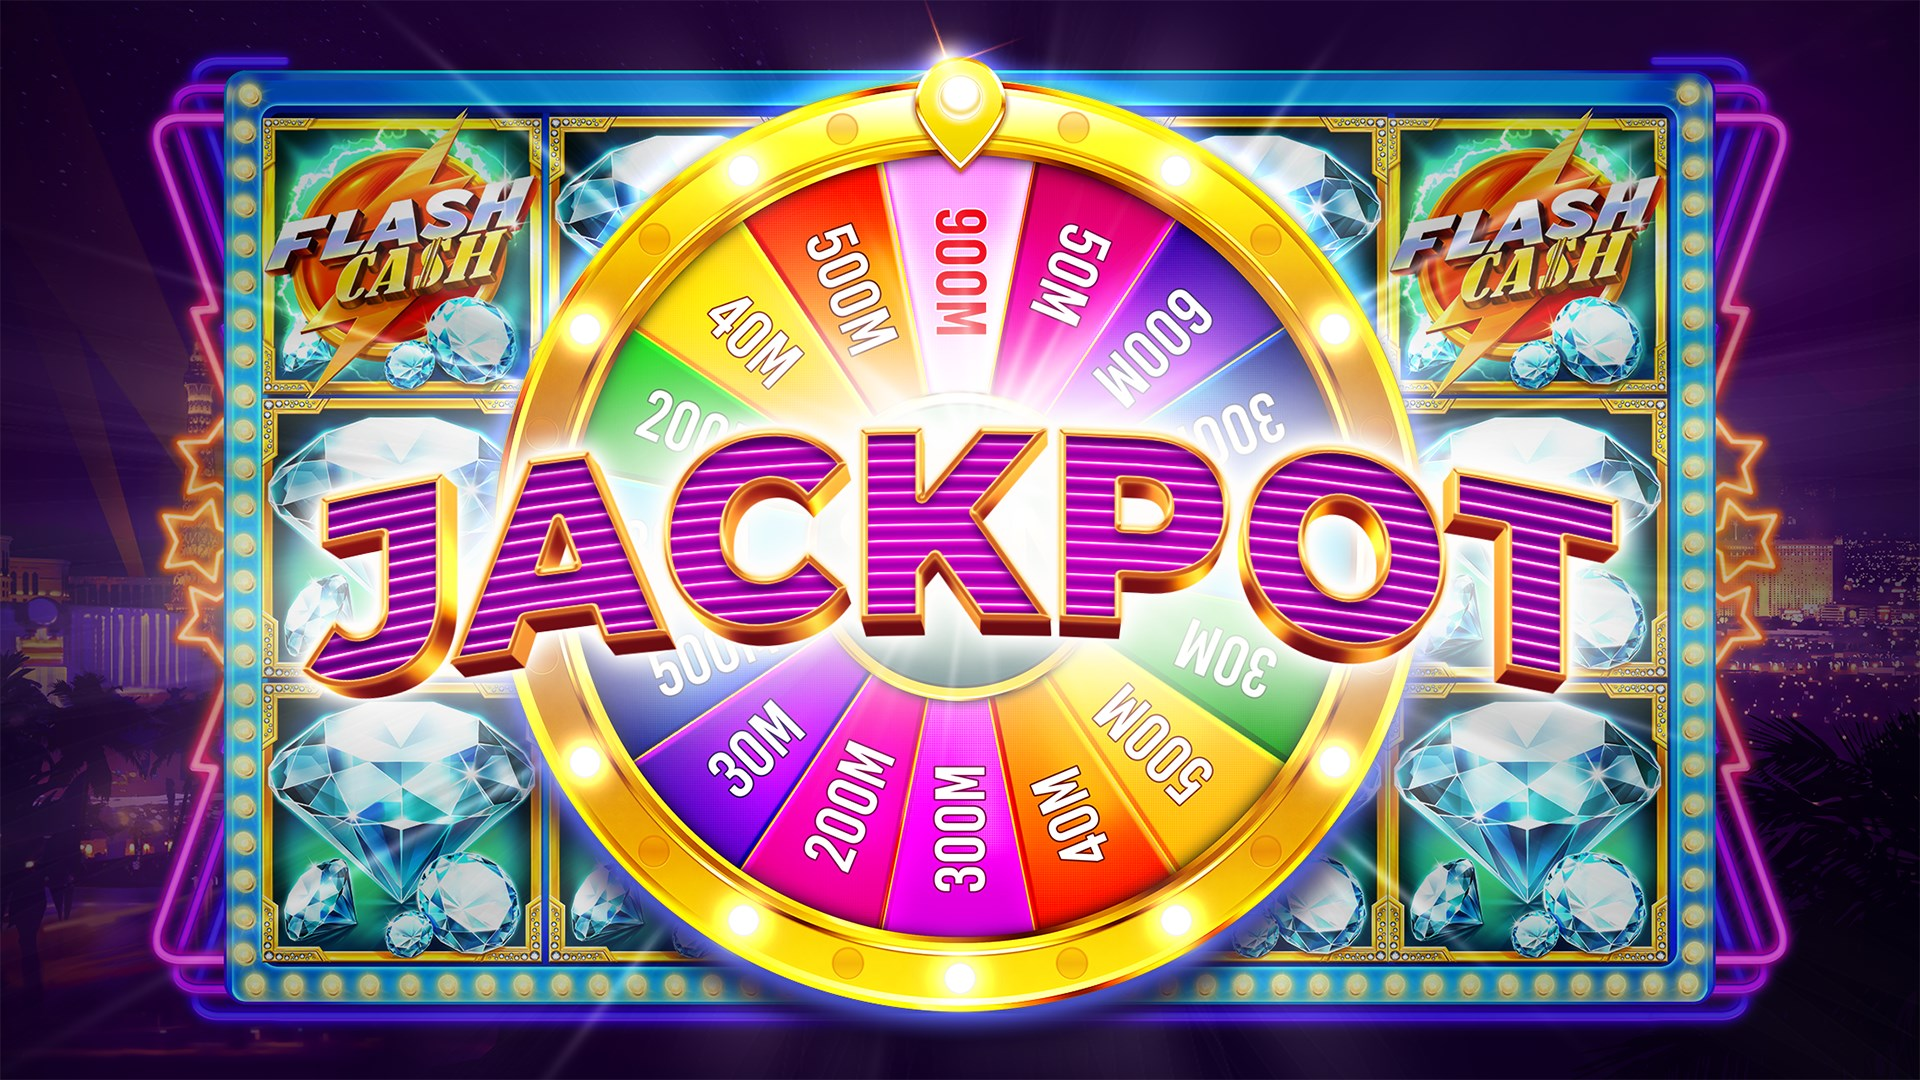 Slot Software : What Is the Most Popular Slots Software?